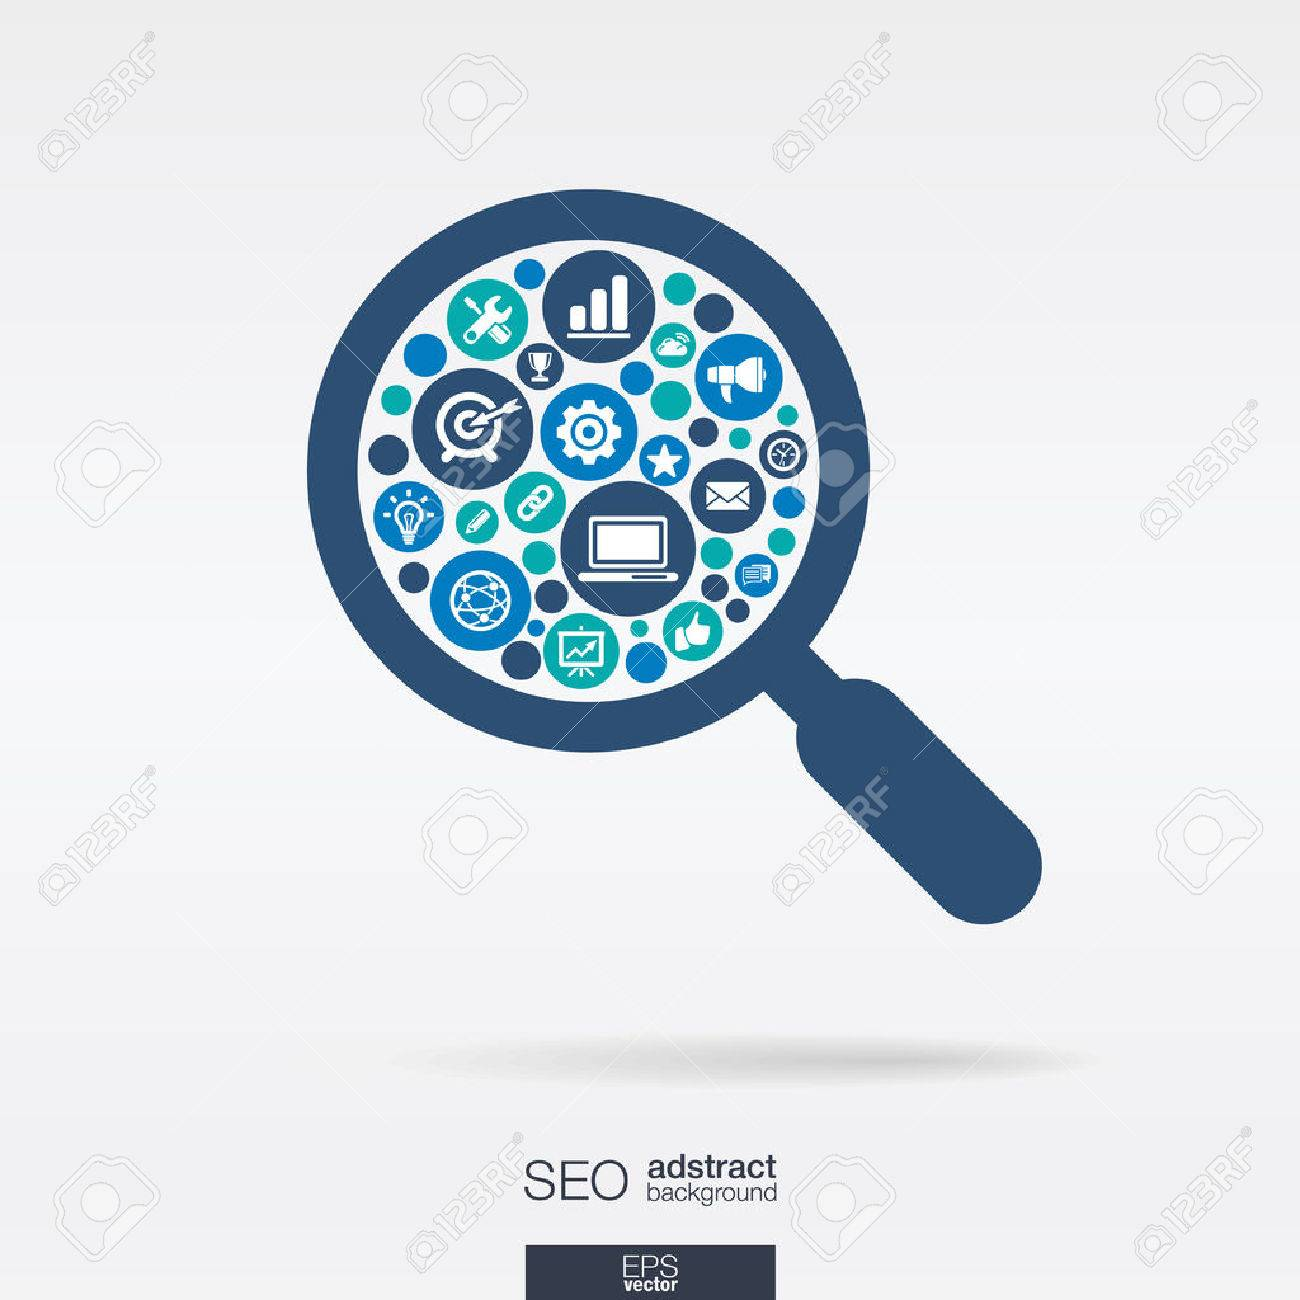 Color circles, flat icons in an magnifier glass shape: technology, SEO, network, digital, analytics, data and market concepts. - 43347918